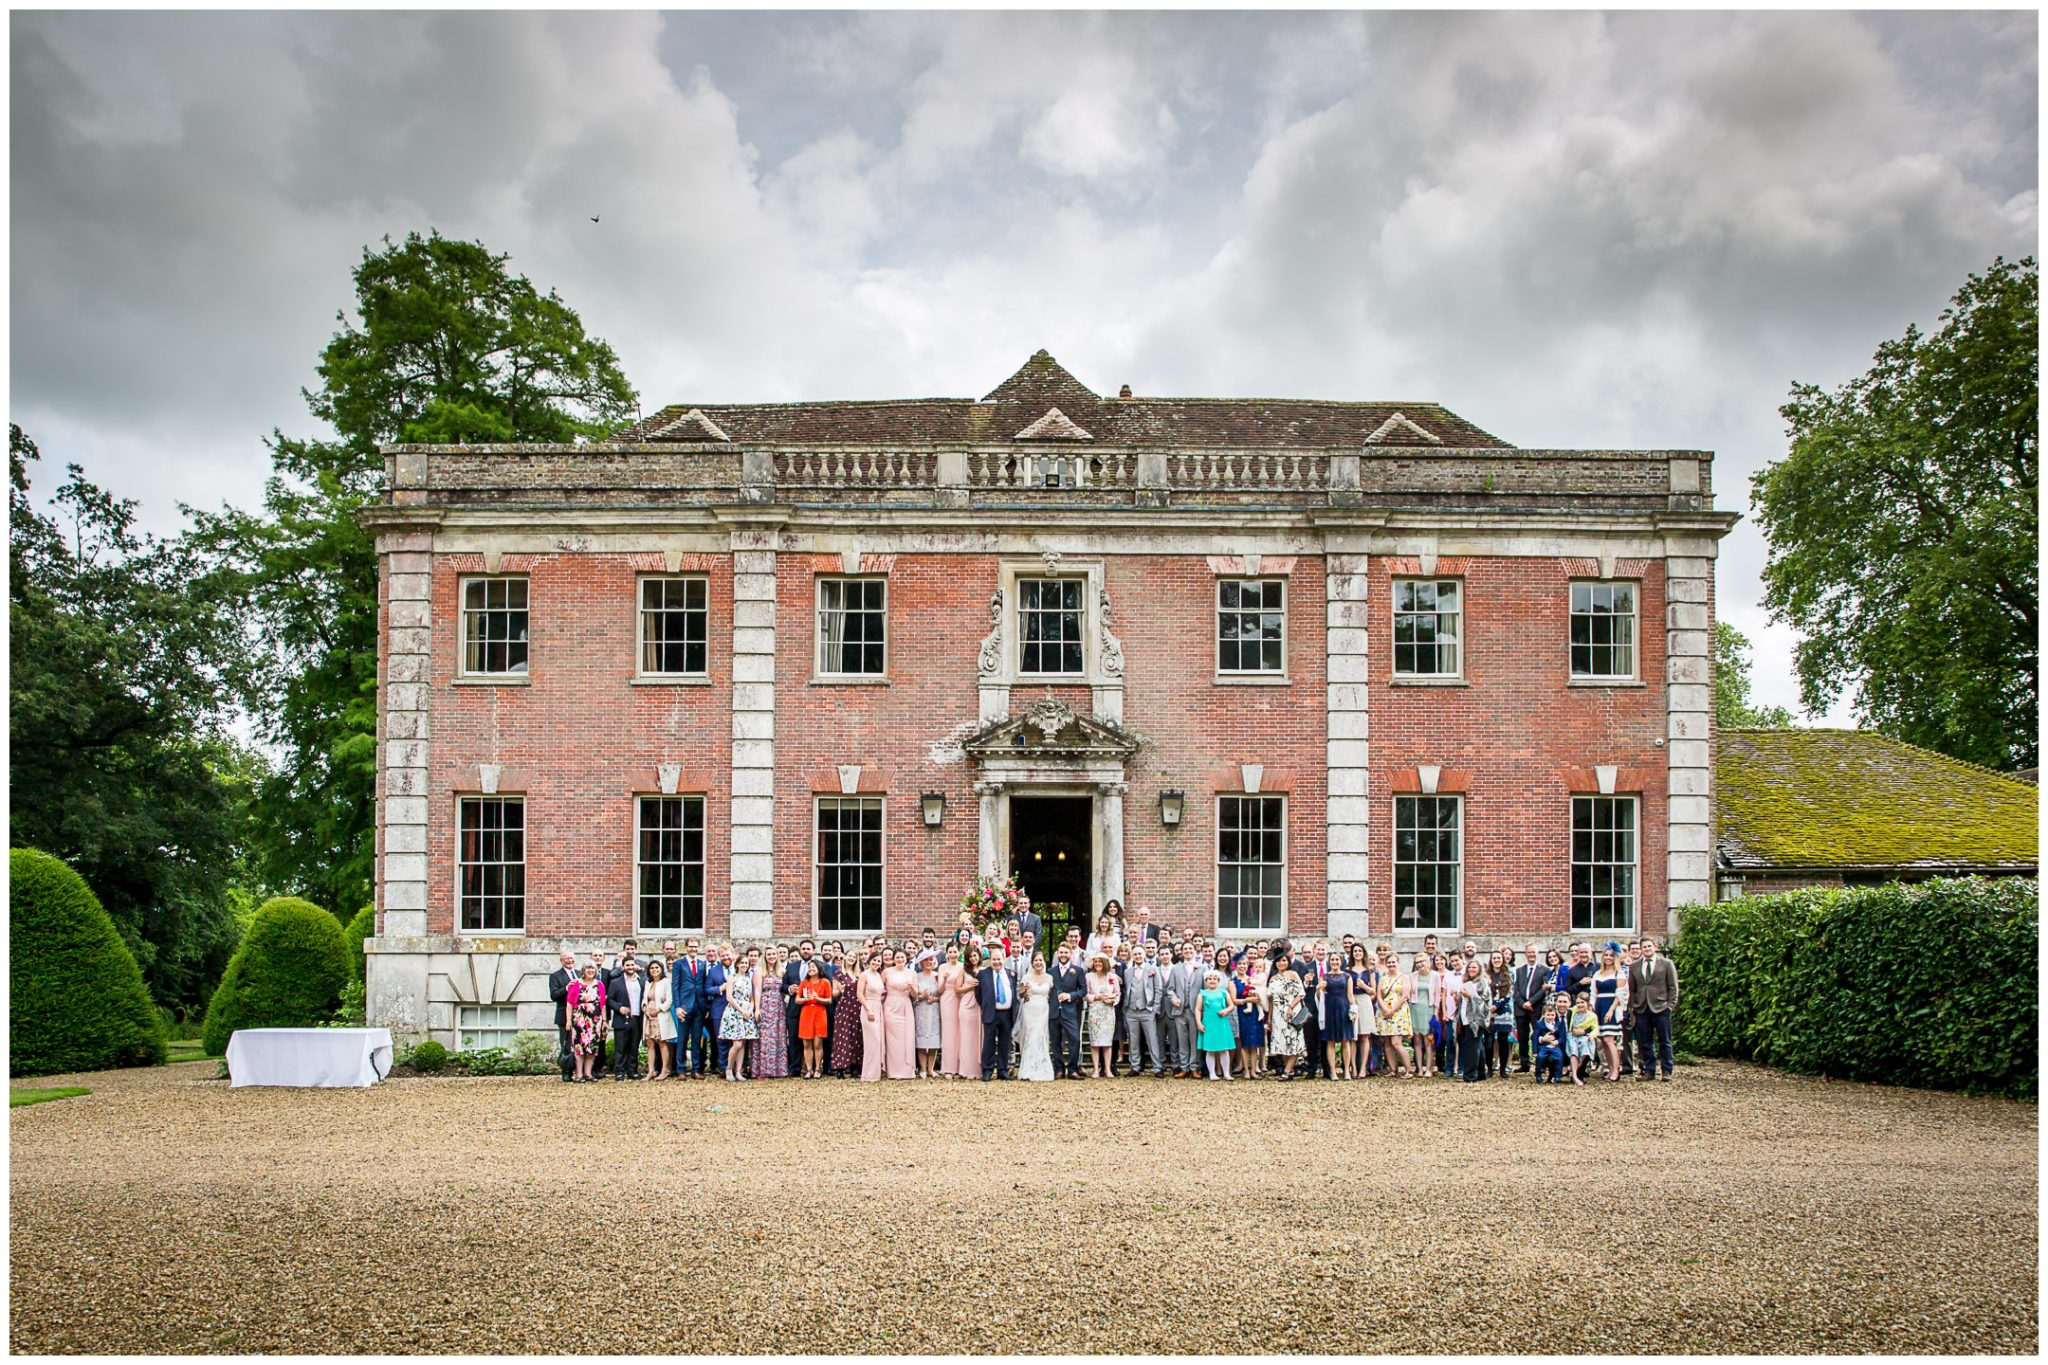 Full group photo of wedding guests outside Deans Court Dorset wedding venue